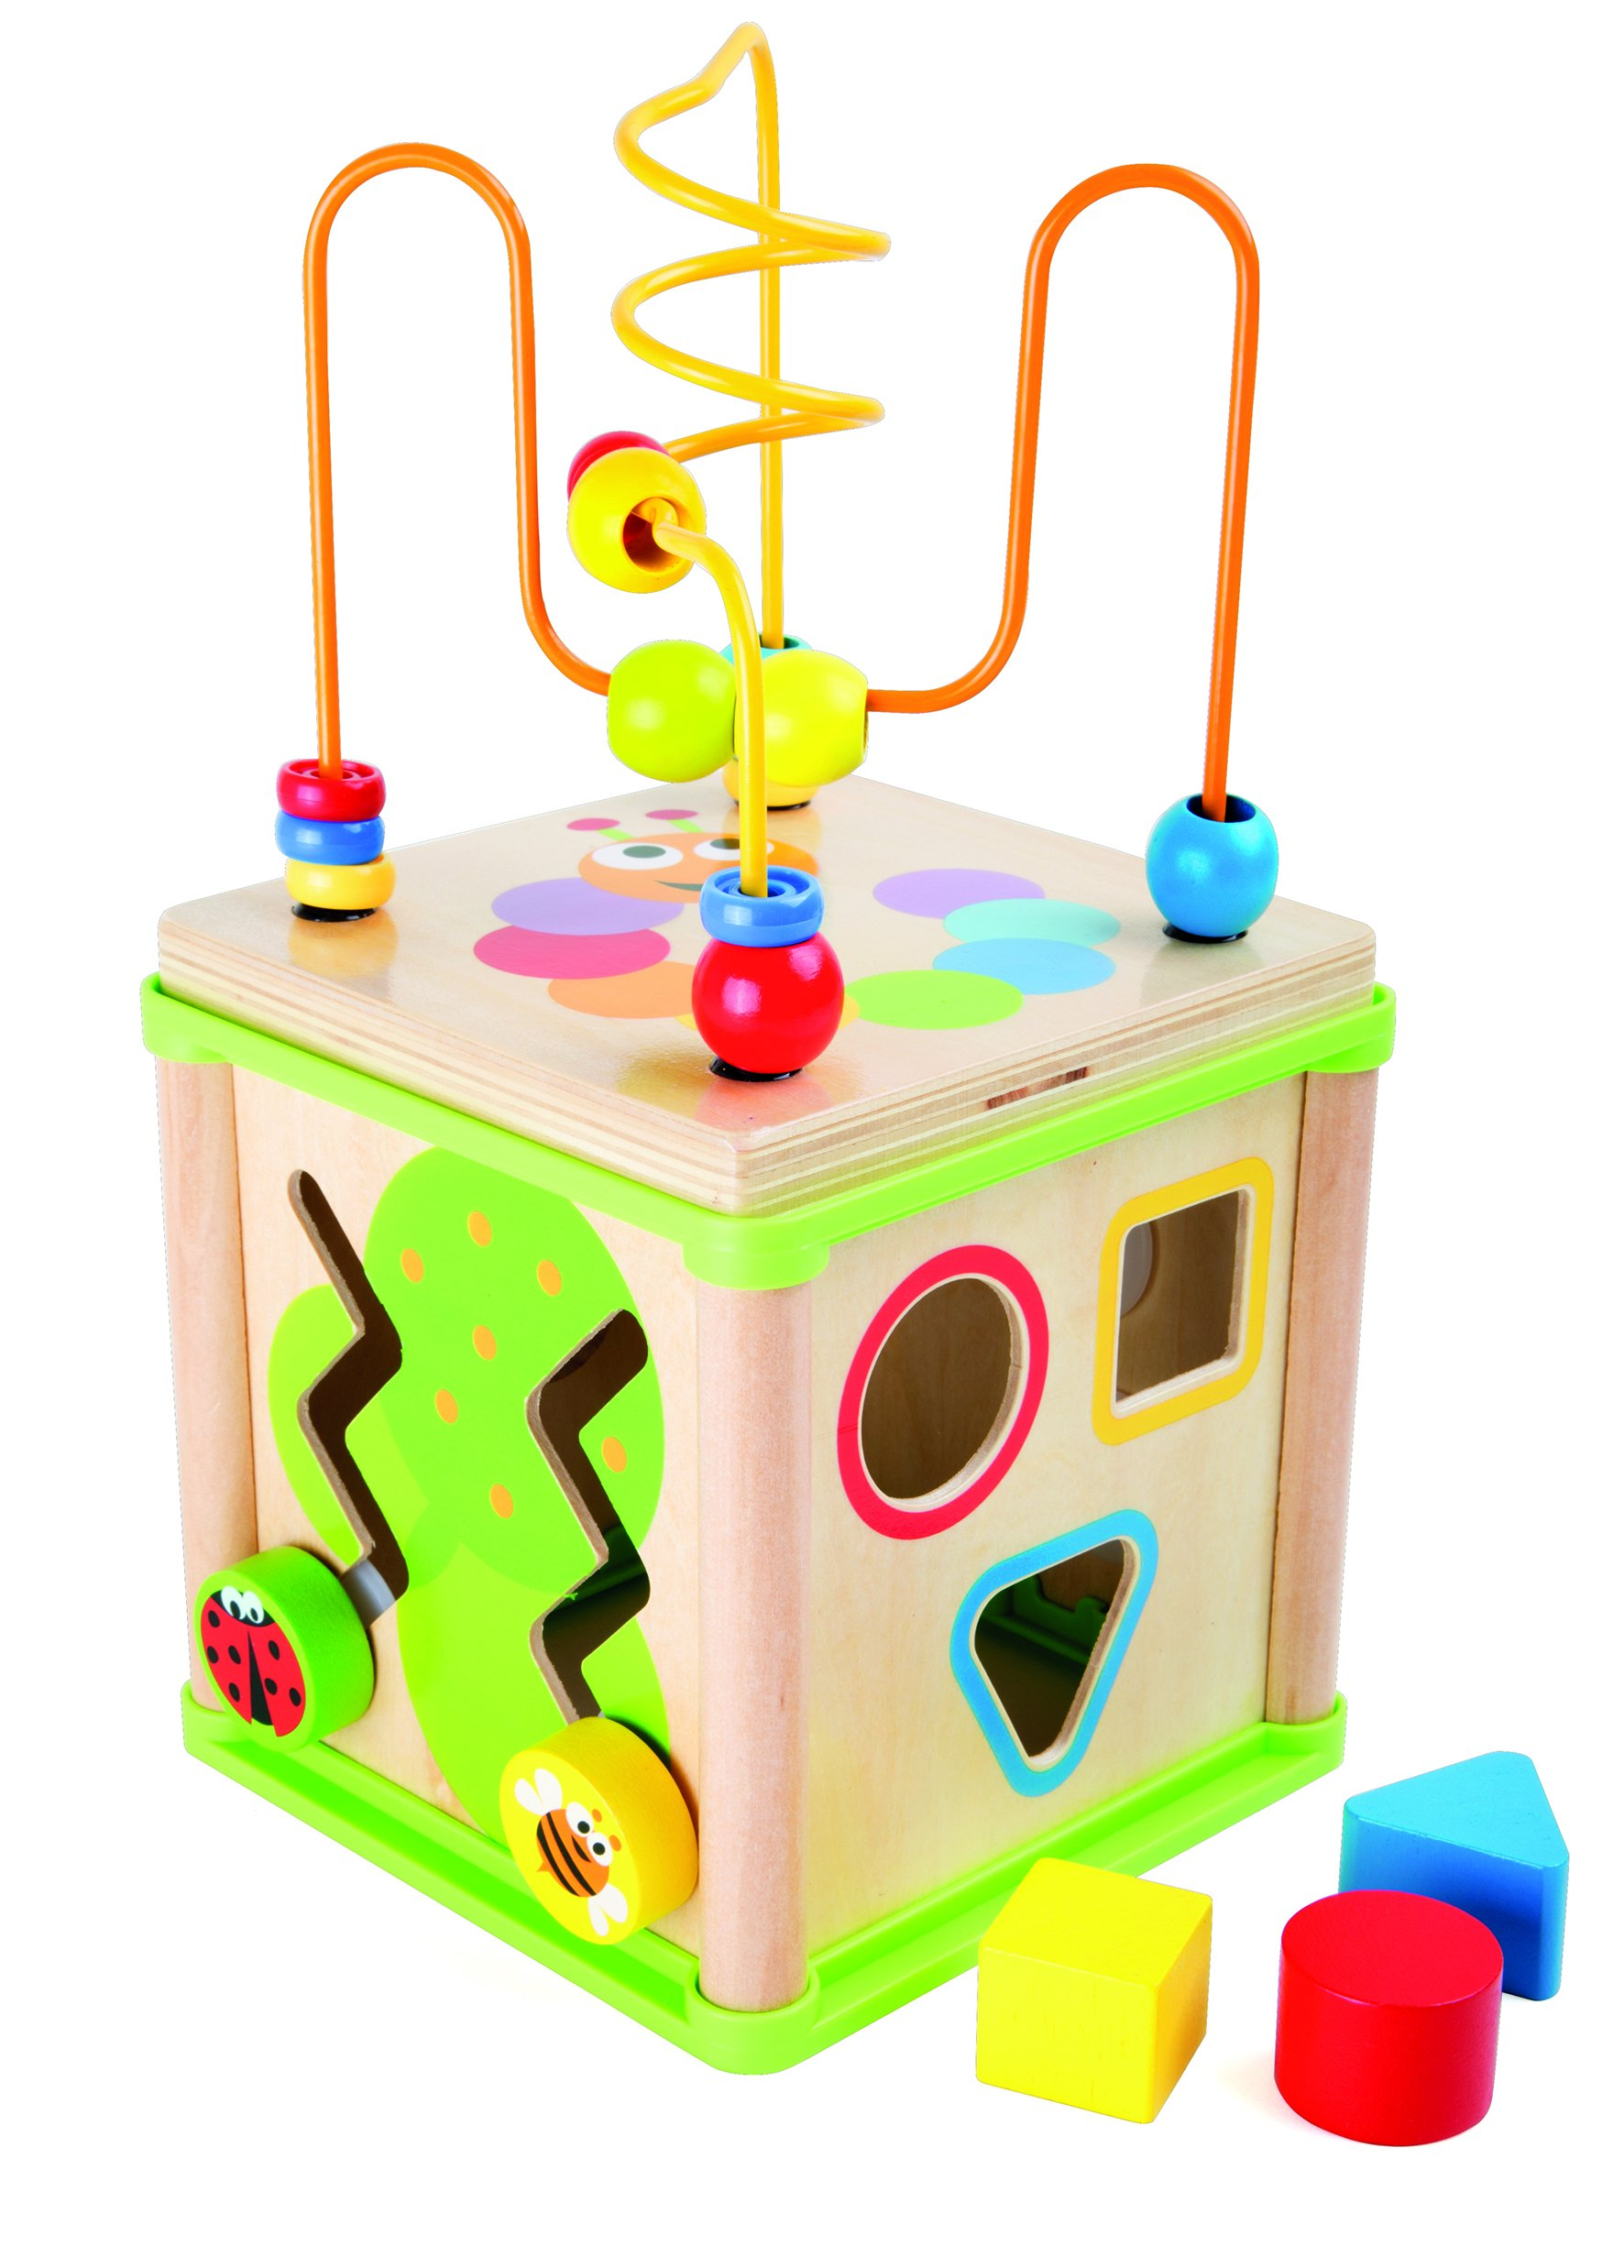 Legler Wooden Insect Motor Skills Training Activity Cube Premium Toy Designed for Kids, Ages 12 Months & Up. A Small Foot Design